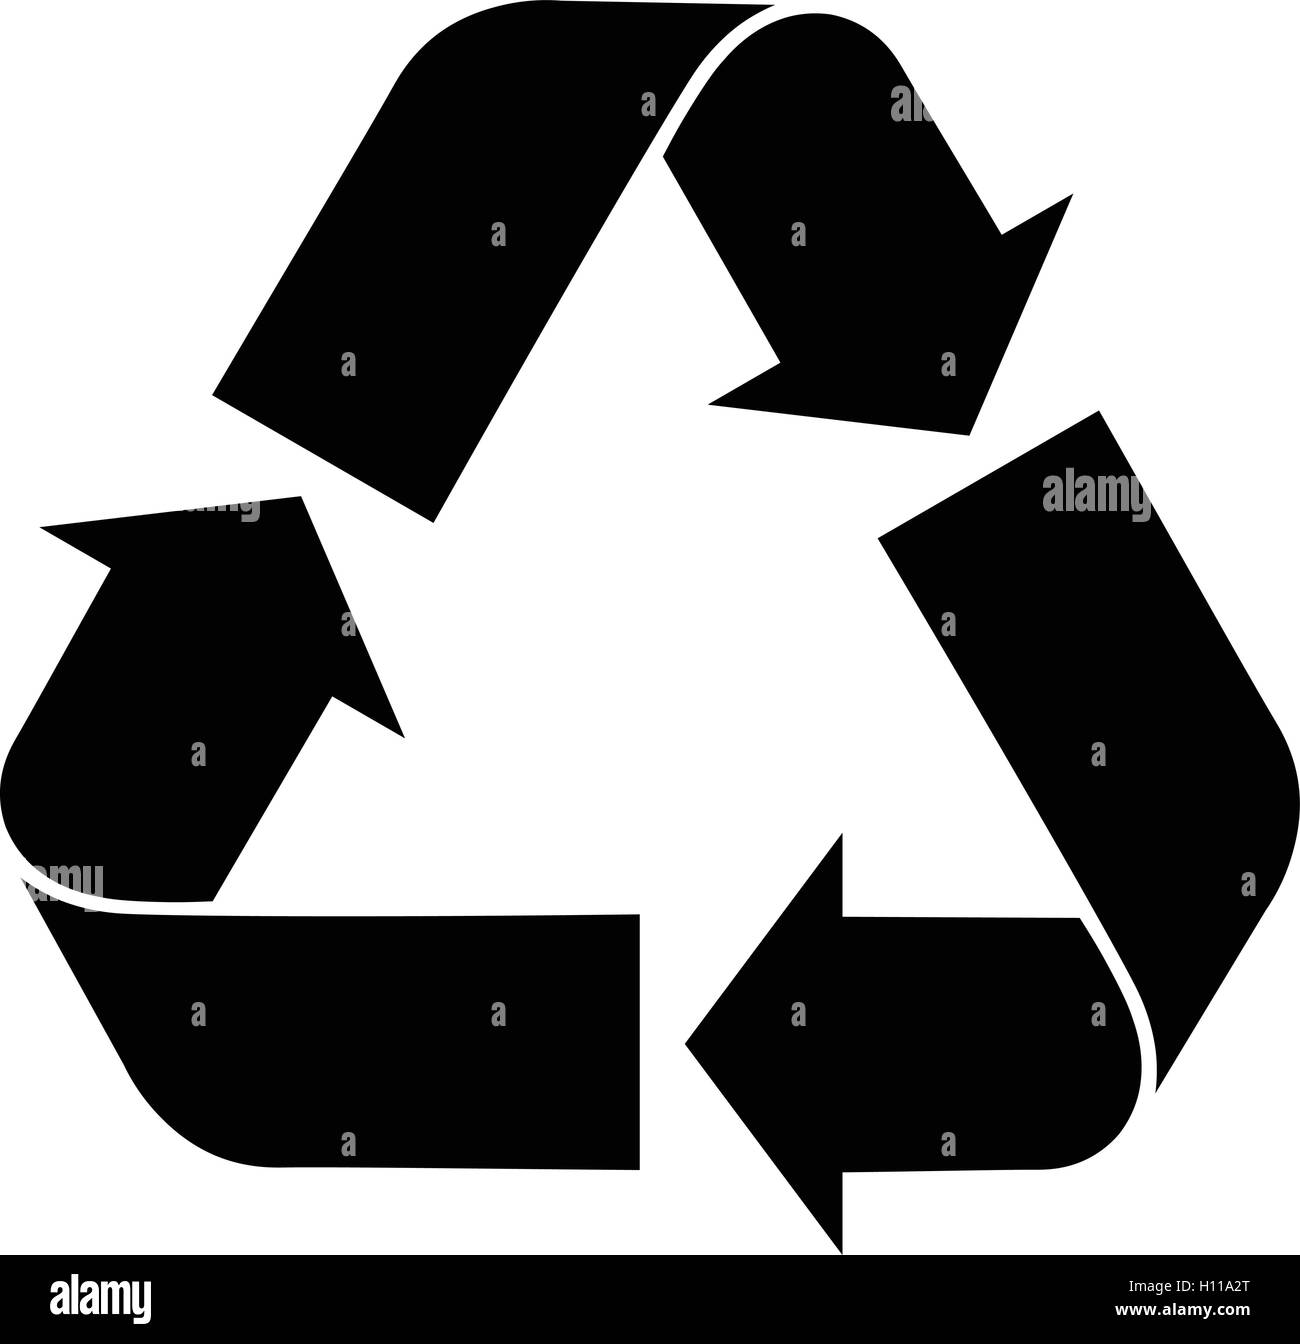 Recycle symbol black and white stock photos images alamy universal recycling symbol recycle isolated black sign accurate vector illustration stock buycottarizona Image collections